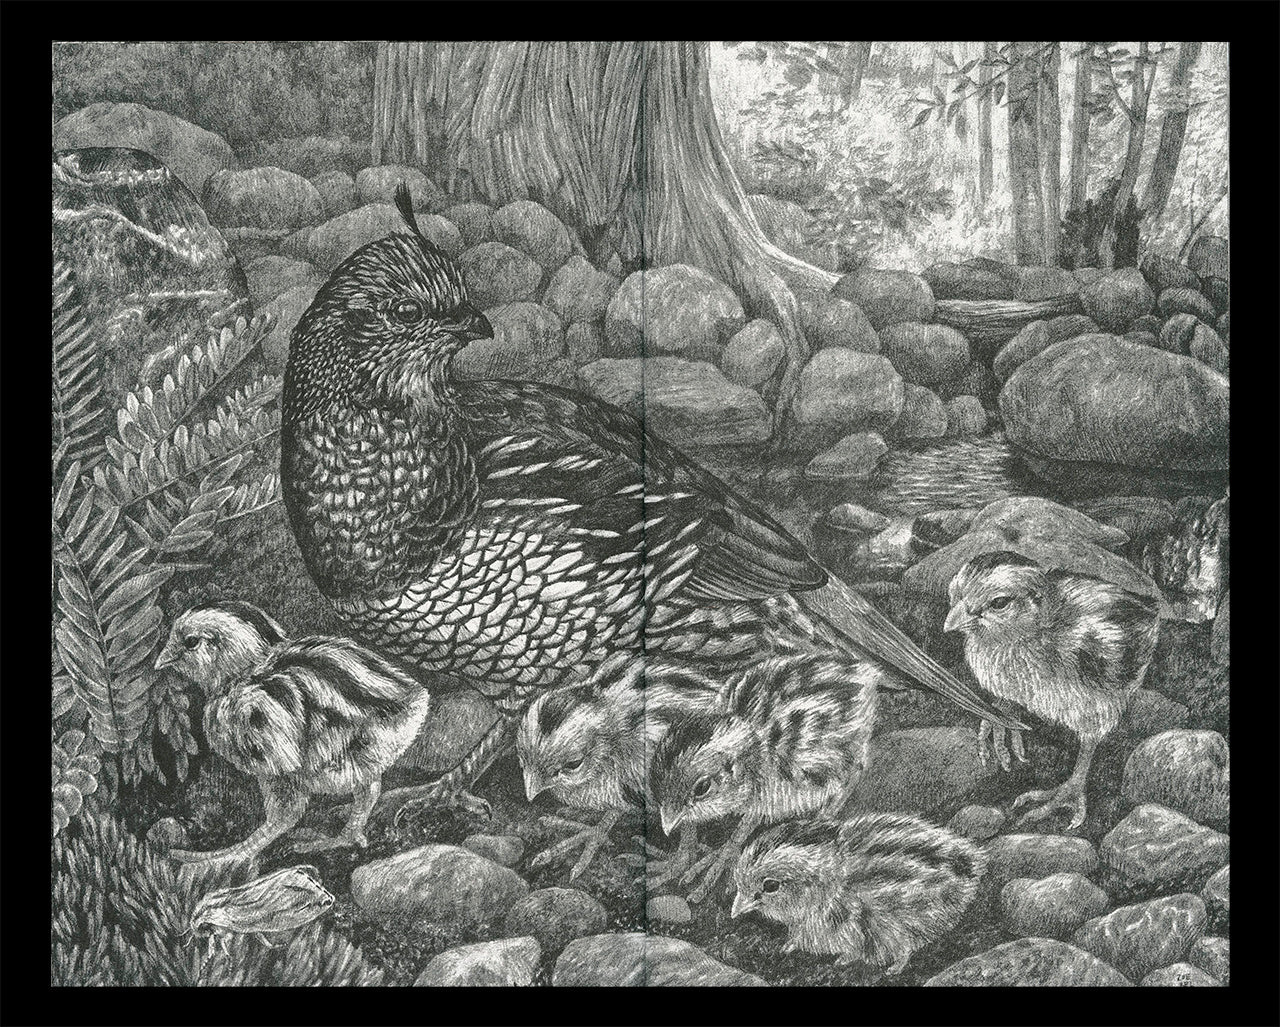 """Interior spread of Zoe Keller's zine """"Drawings"""" showing a graphite drawing of a quail family in the woods"""